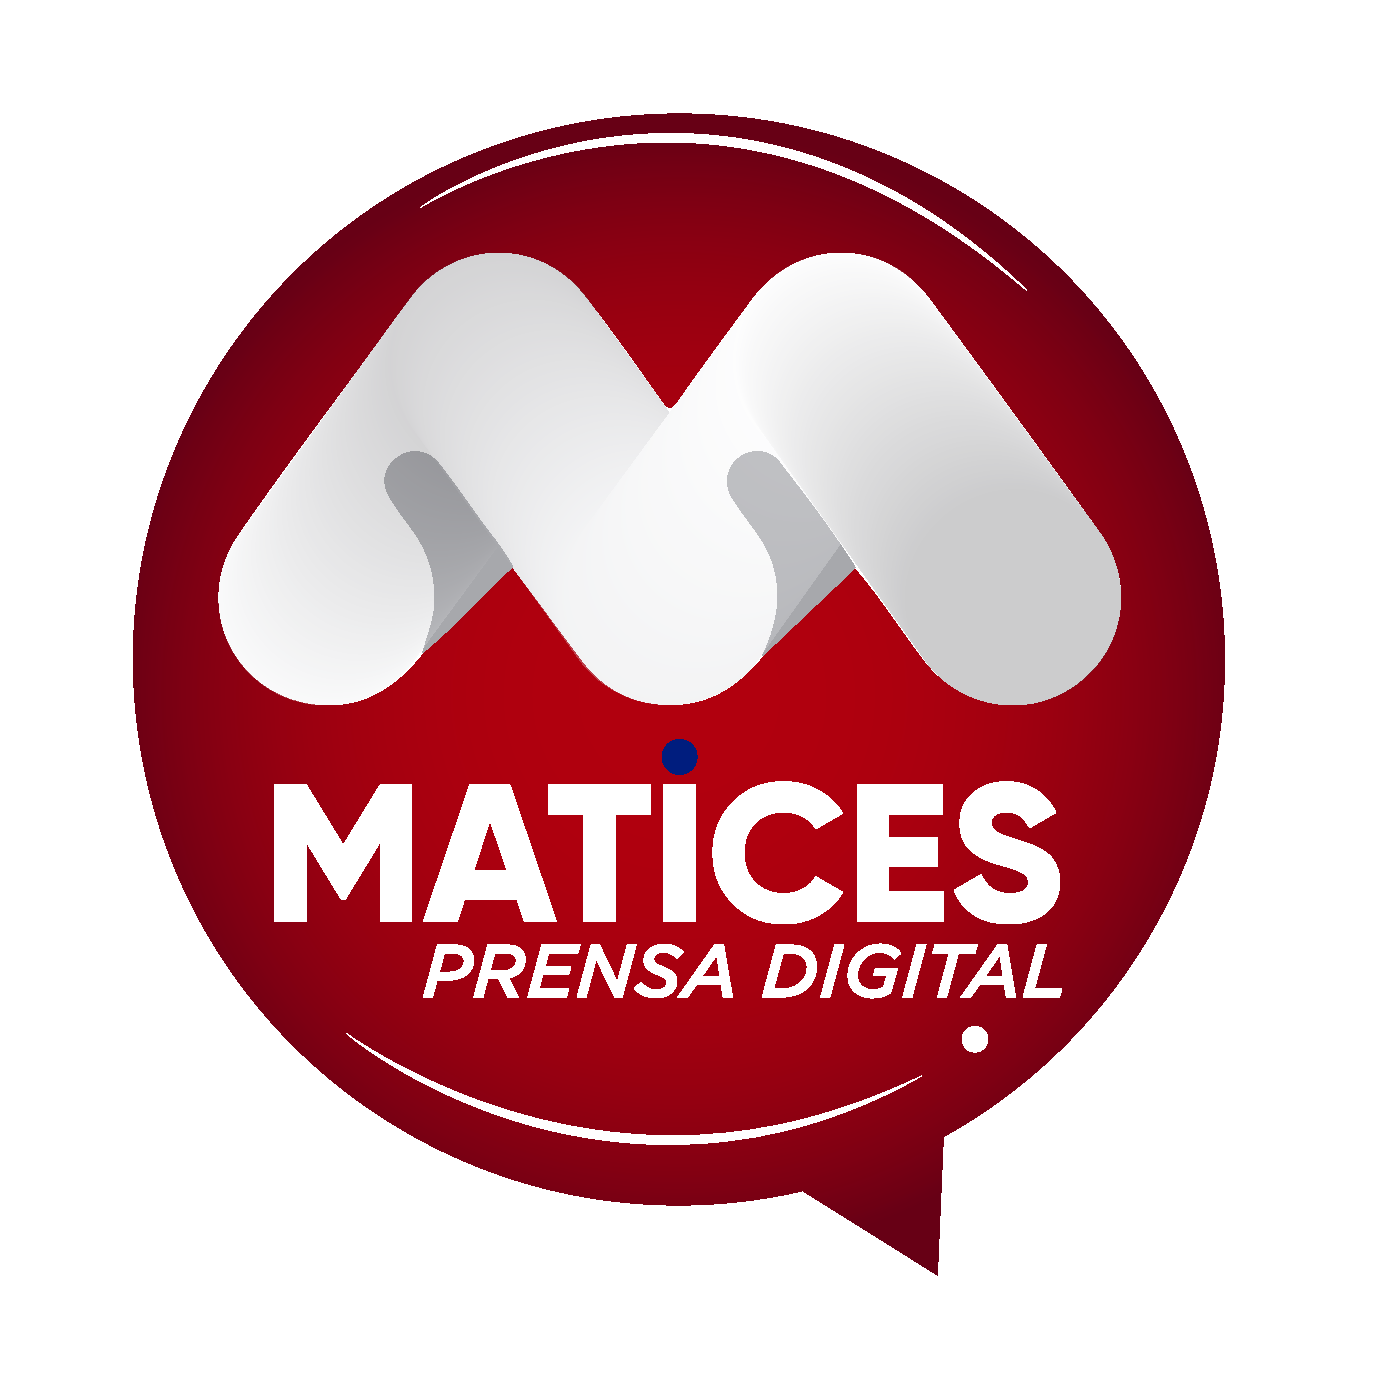 Matices Prensa Digital